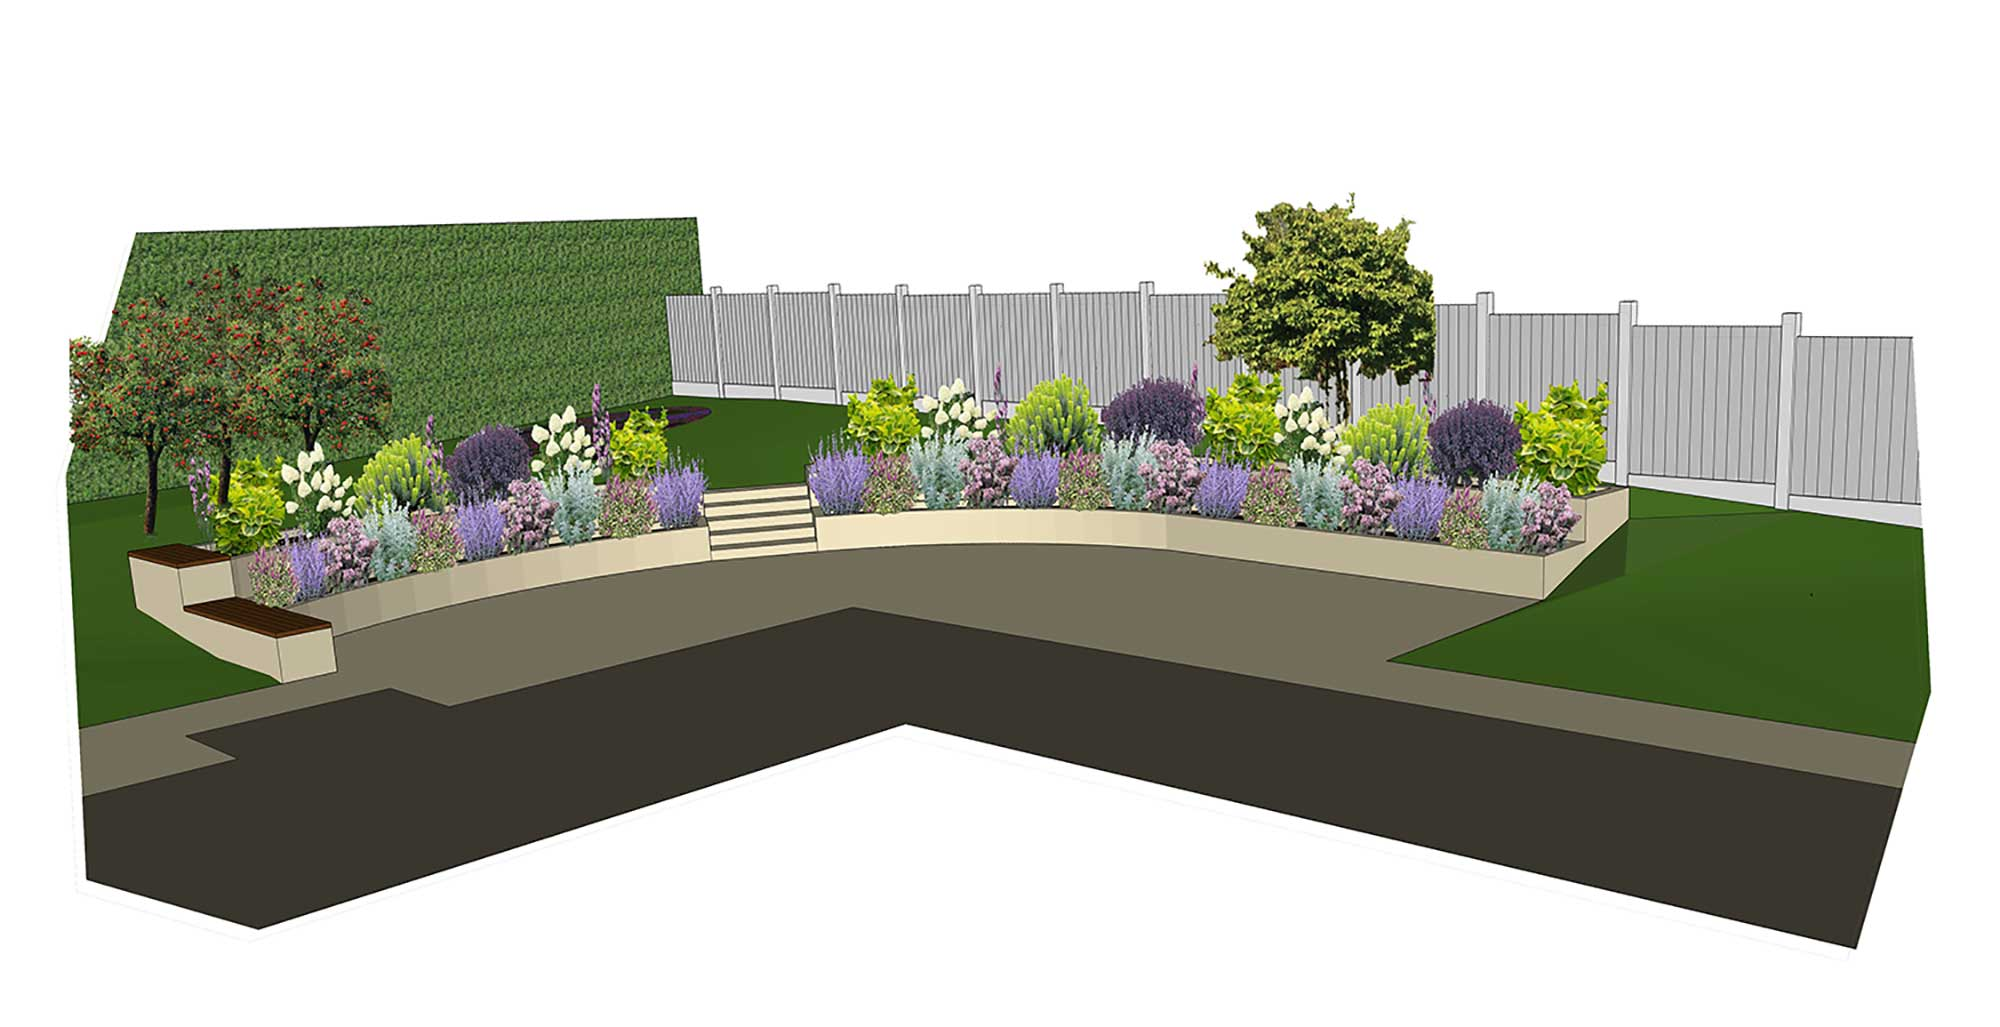 Rear garden design visualisation garden design layout for Garden design layout ideas